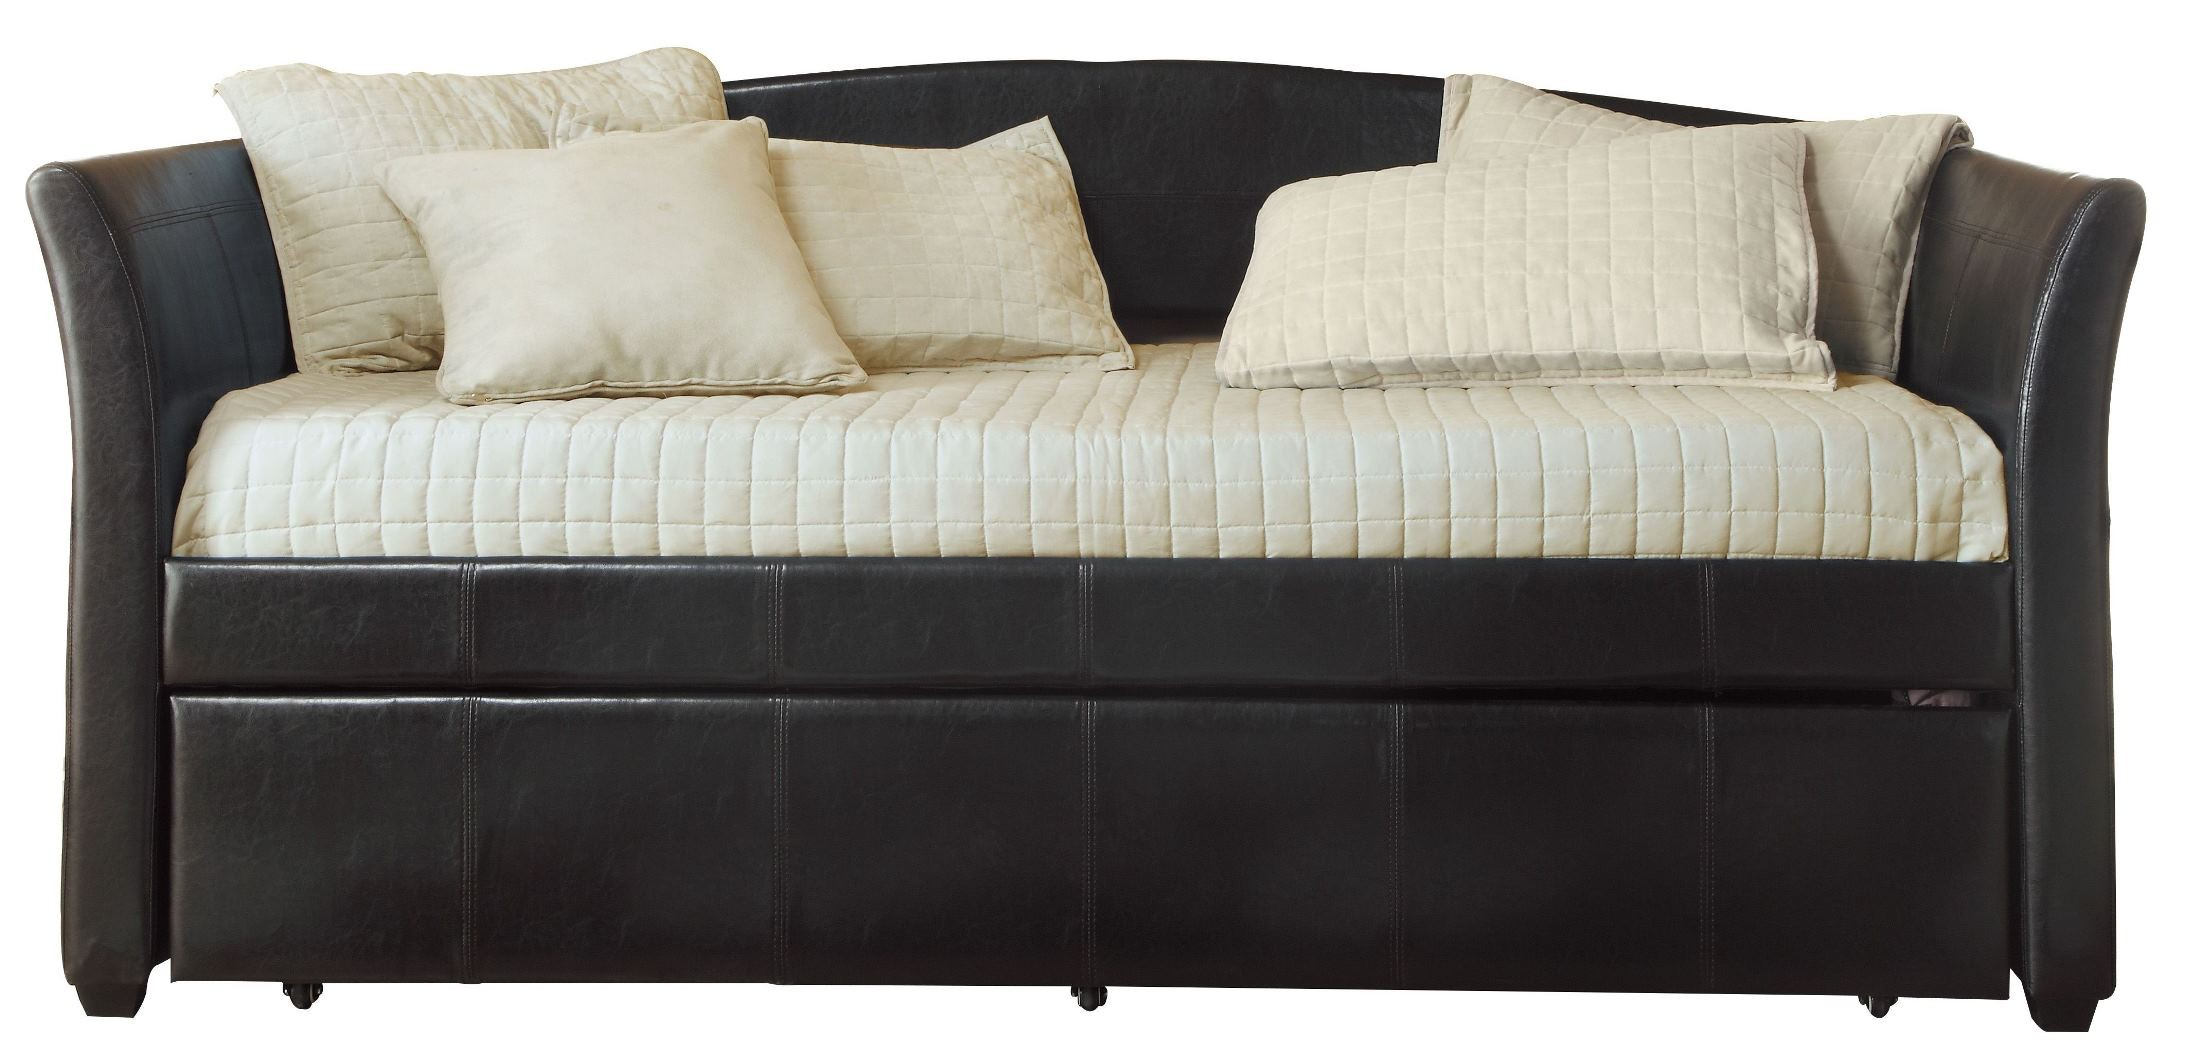 Meyer Dark Brown Daybed With Trundle From Homelegance